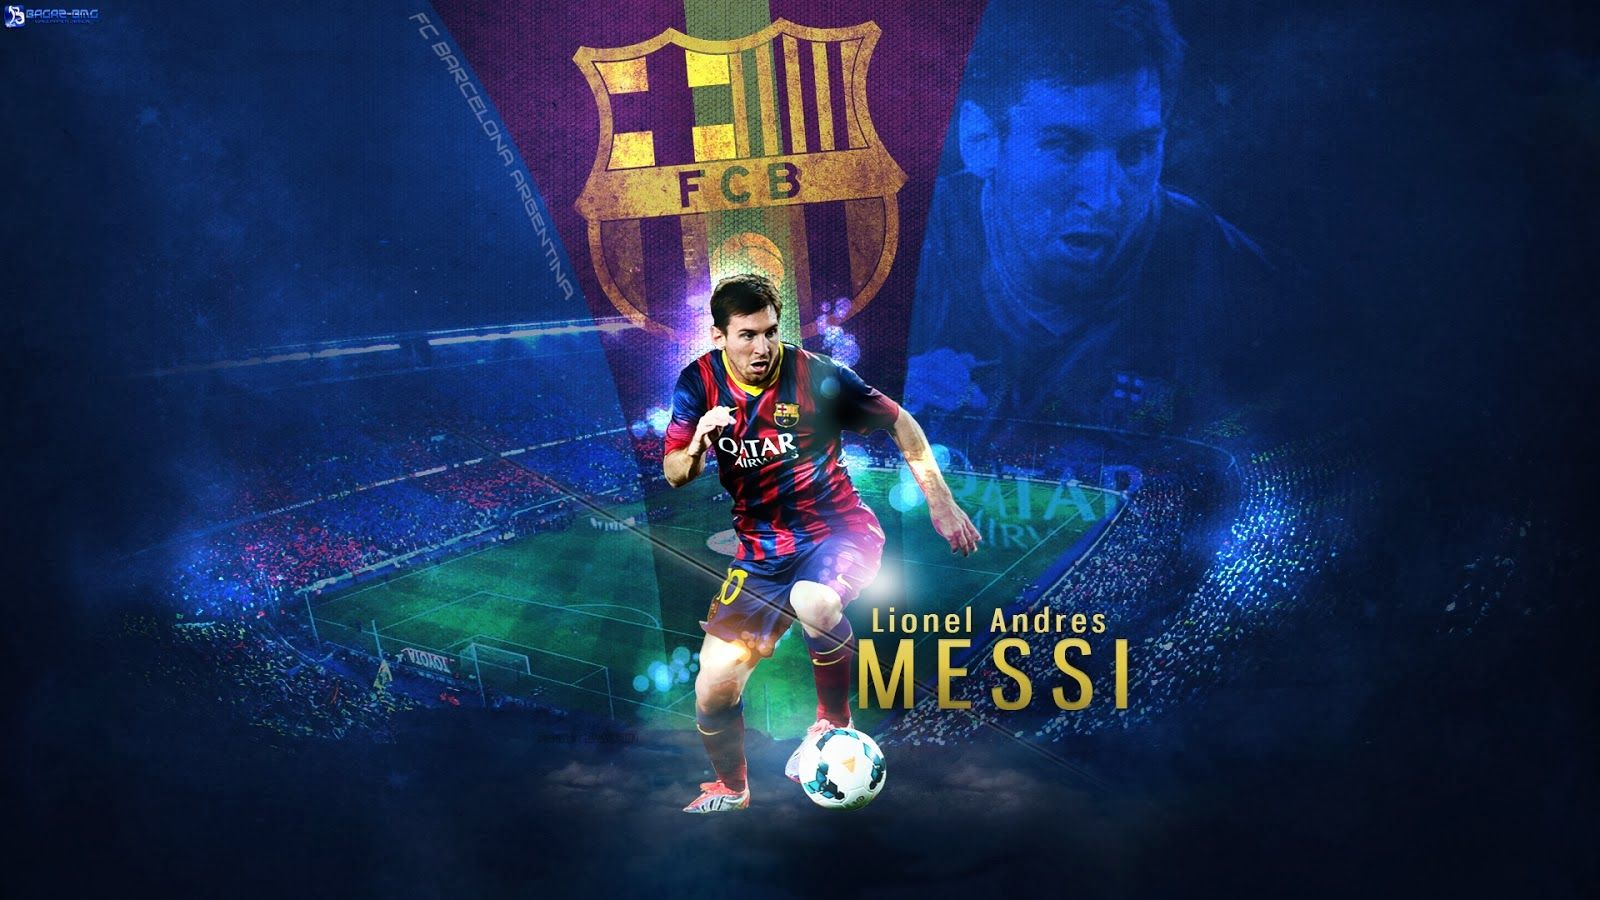 Eye Catching Lionel Messi Wallpaper with barcelona flag